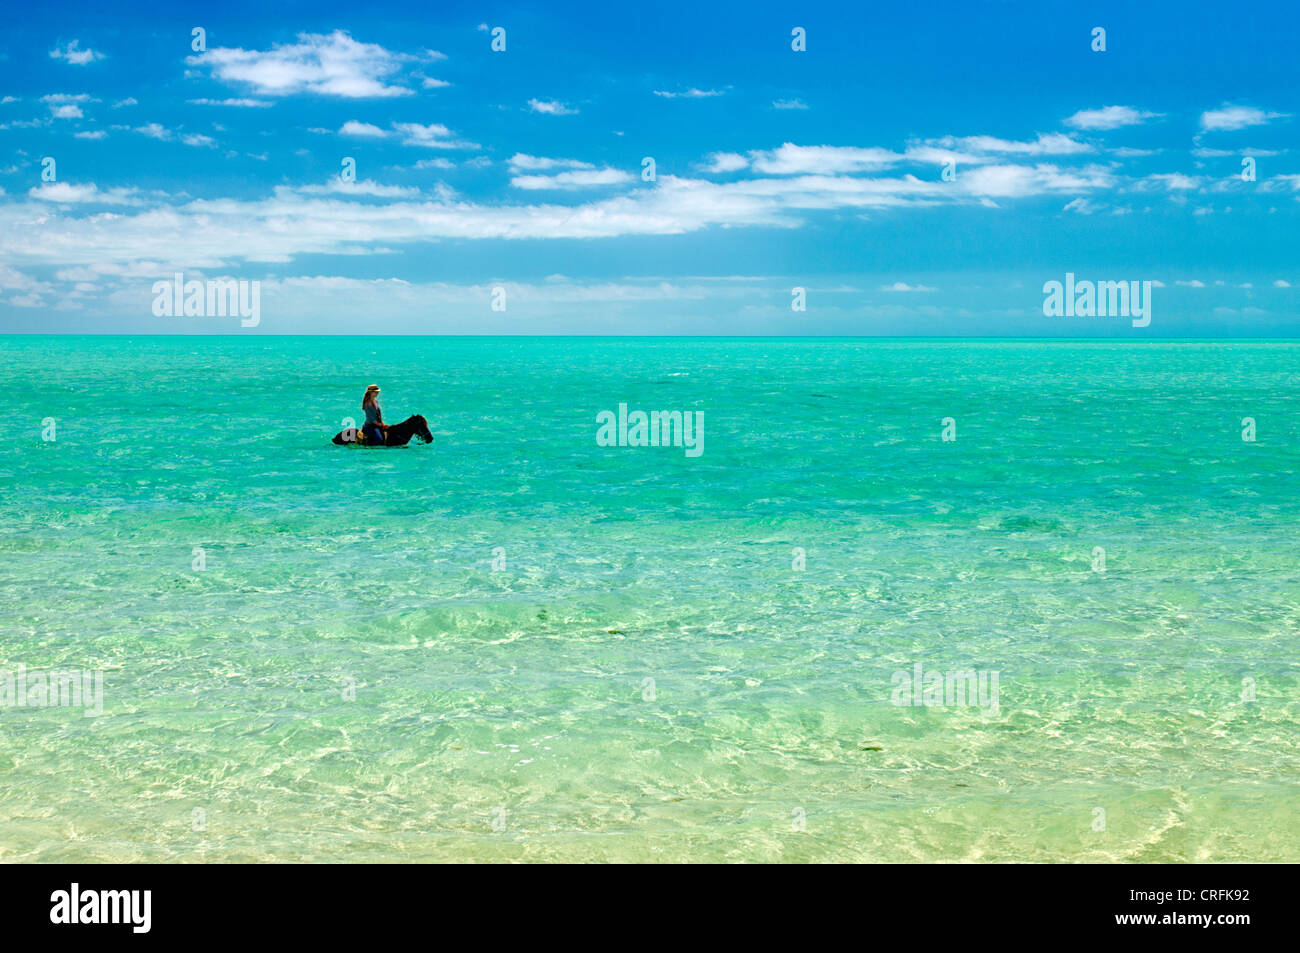 Horse riders in water. Providenciales. Turks and Caicos. - Stock Image